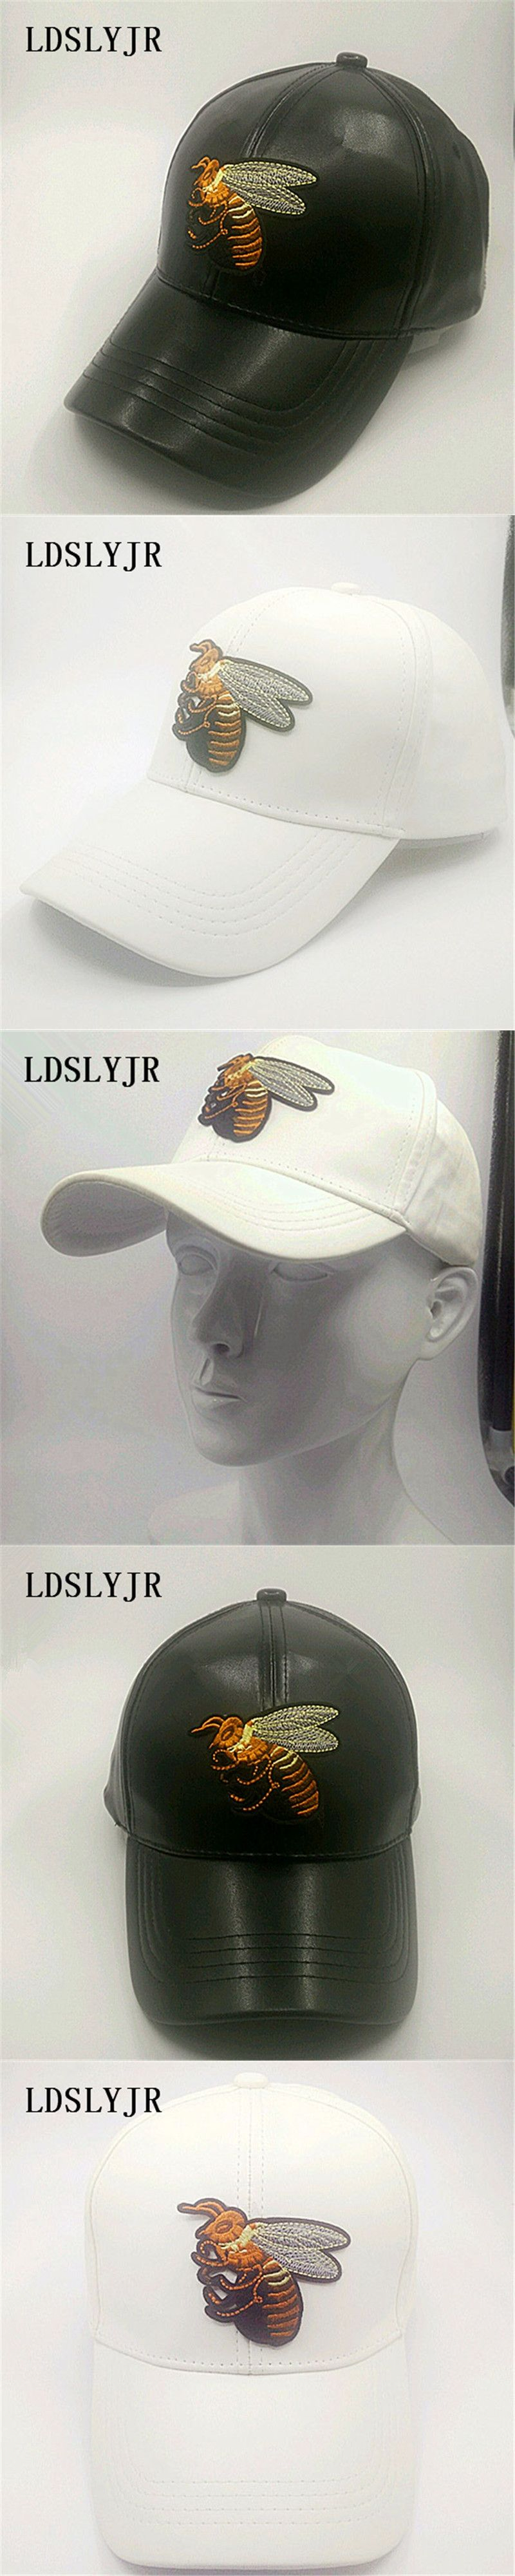 187d38b8 LDSLYJR 2017 leather Queen bee embroidery Adjustable Baseball cap travel  hats for men and women 751